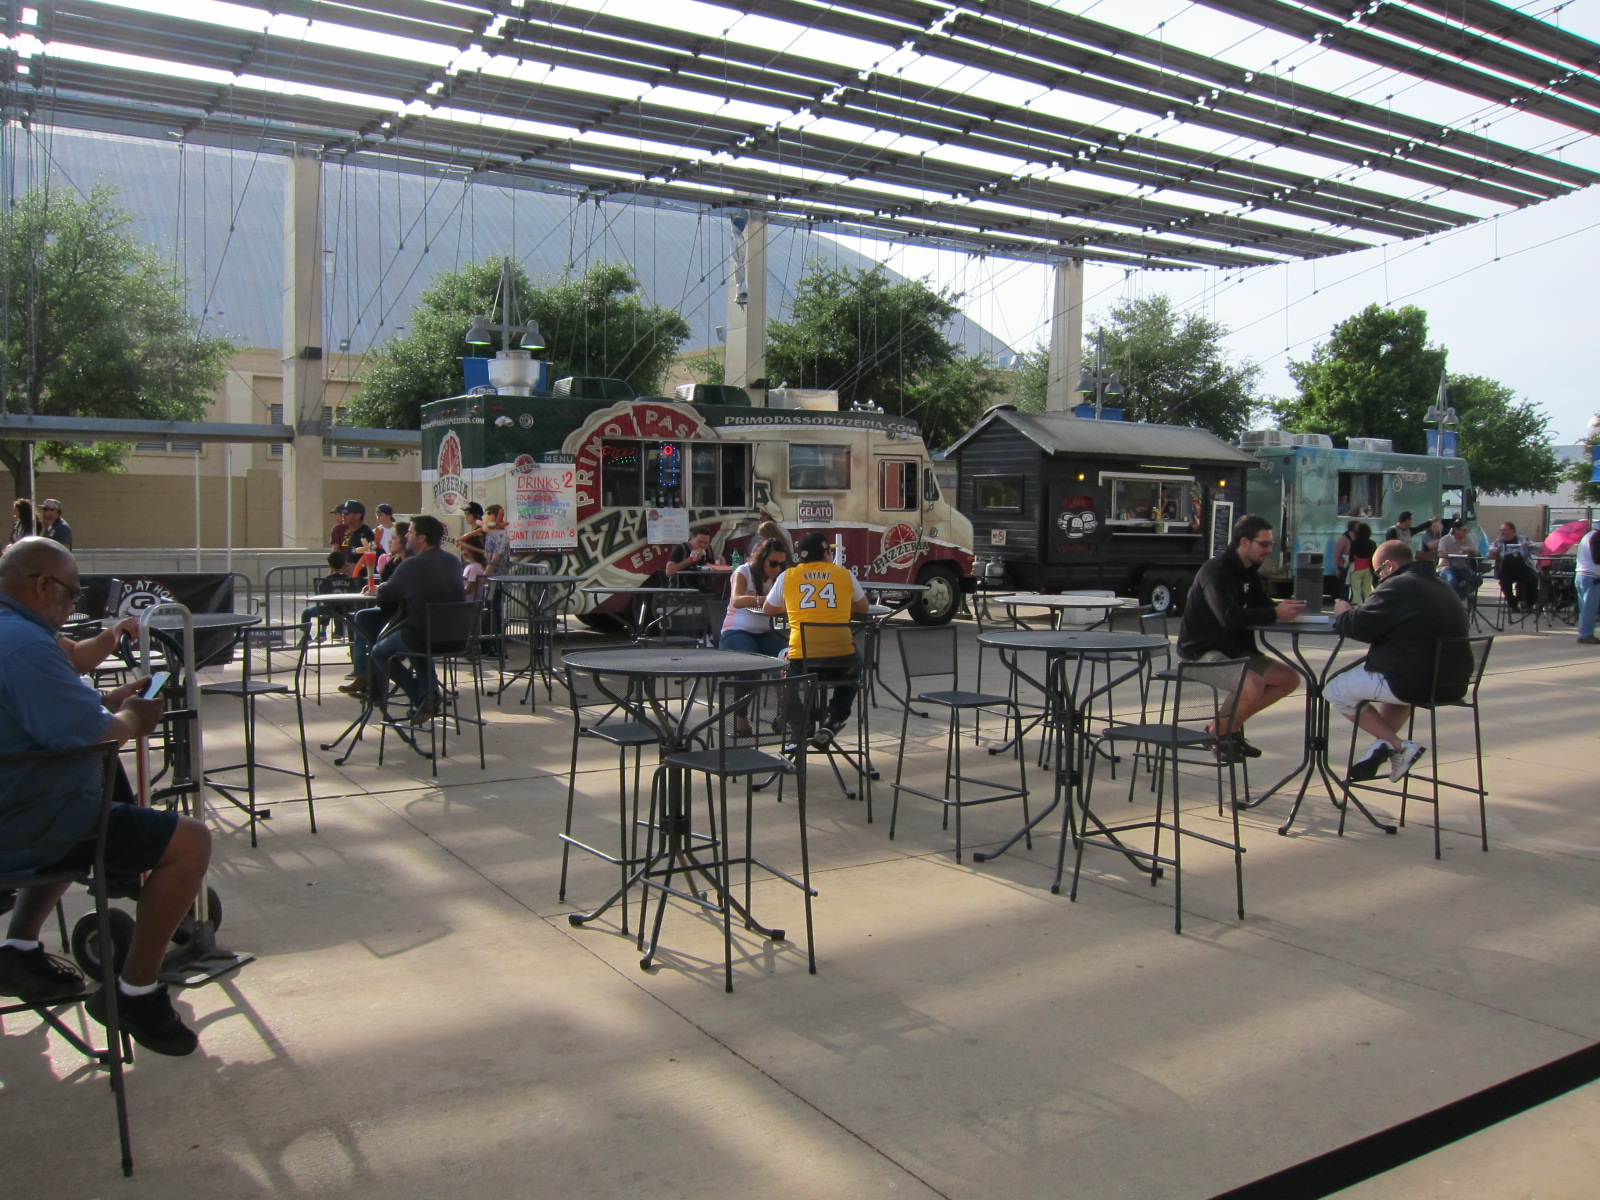 Outdoor Patio Seating at the AT&T Center